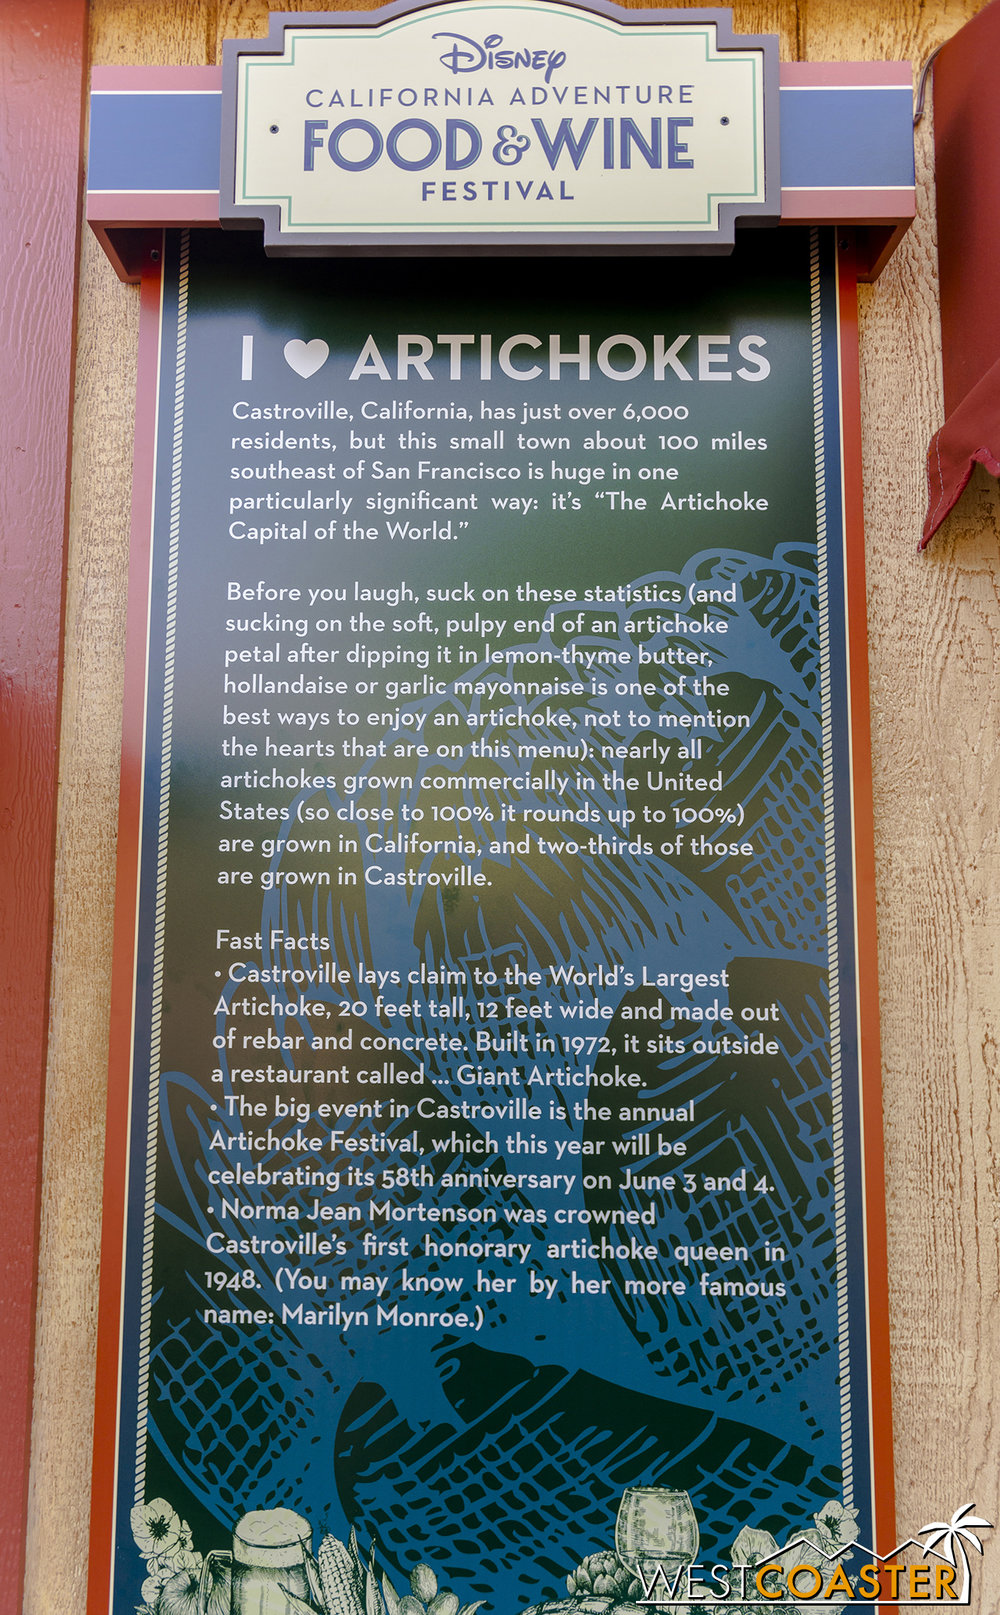 DLR-17_0314-H-Descriptions-03-ILoveArtichokes.jpg